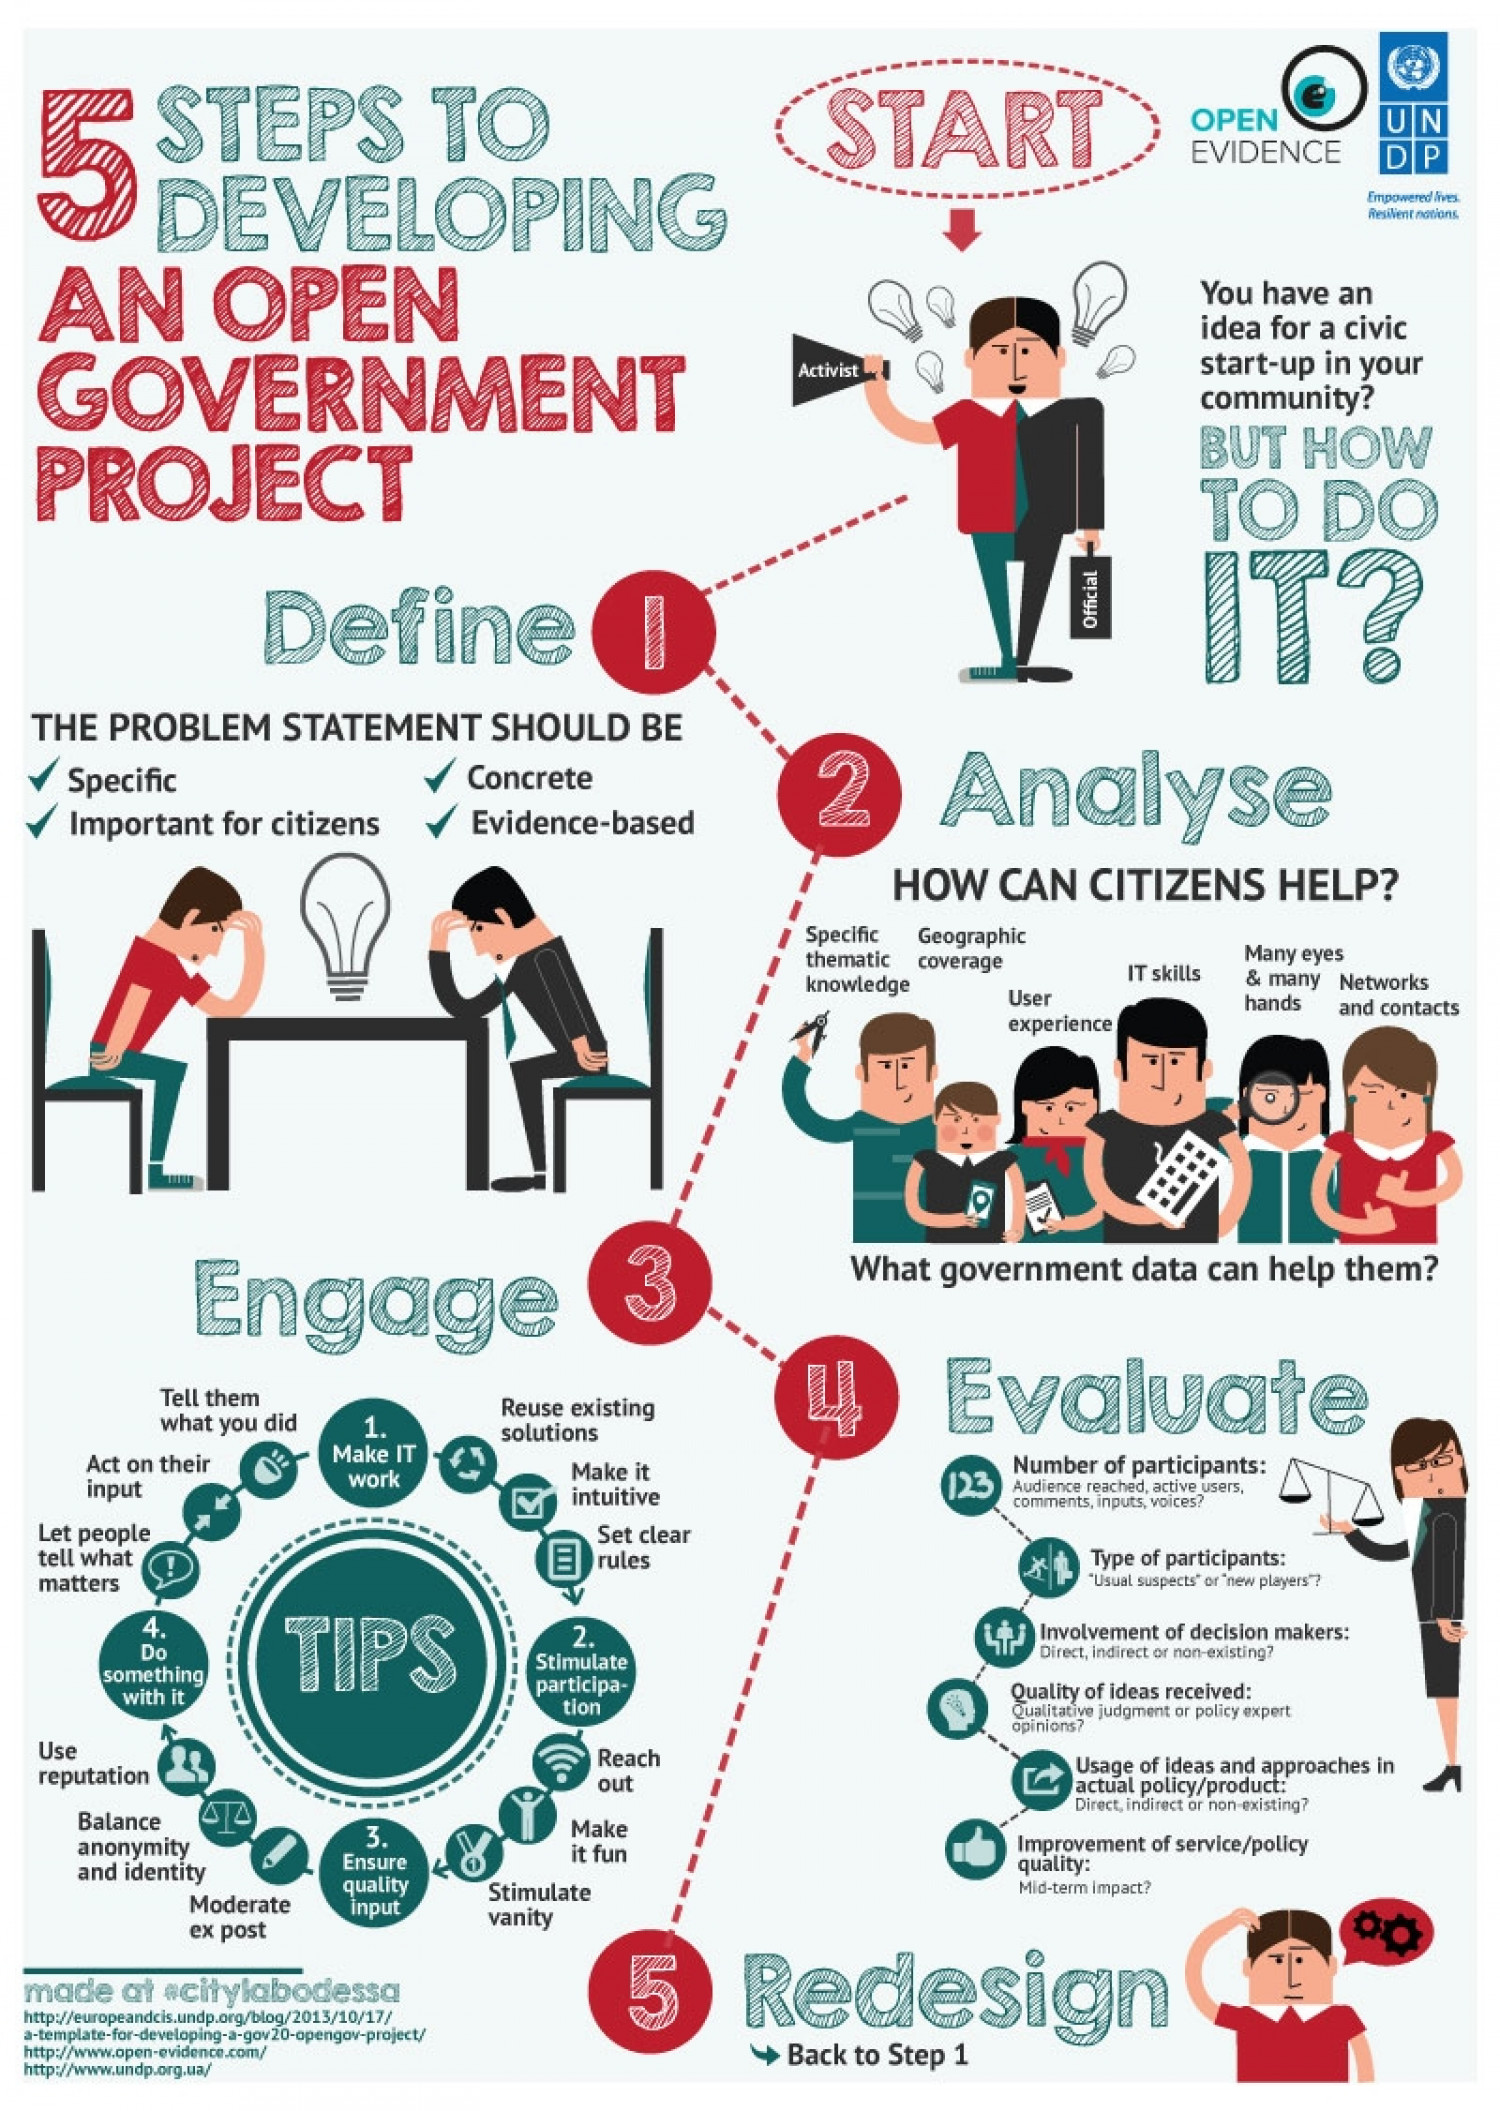 Project Steps: 5 Steps To Developing An Open Government Project